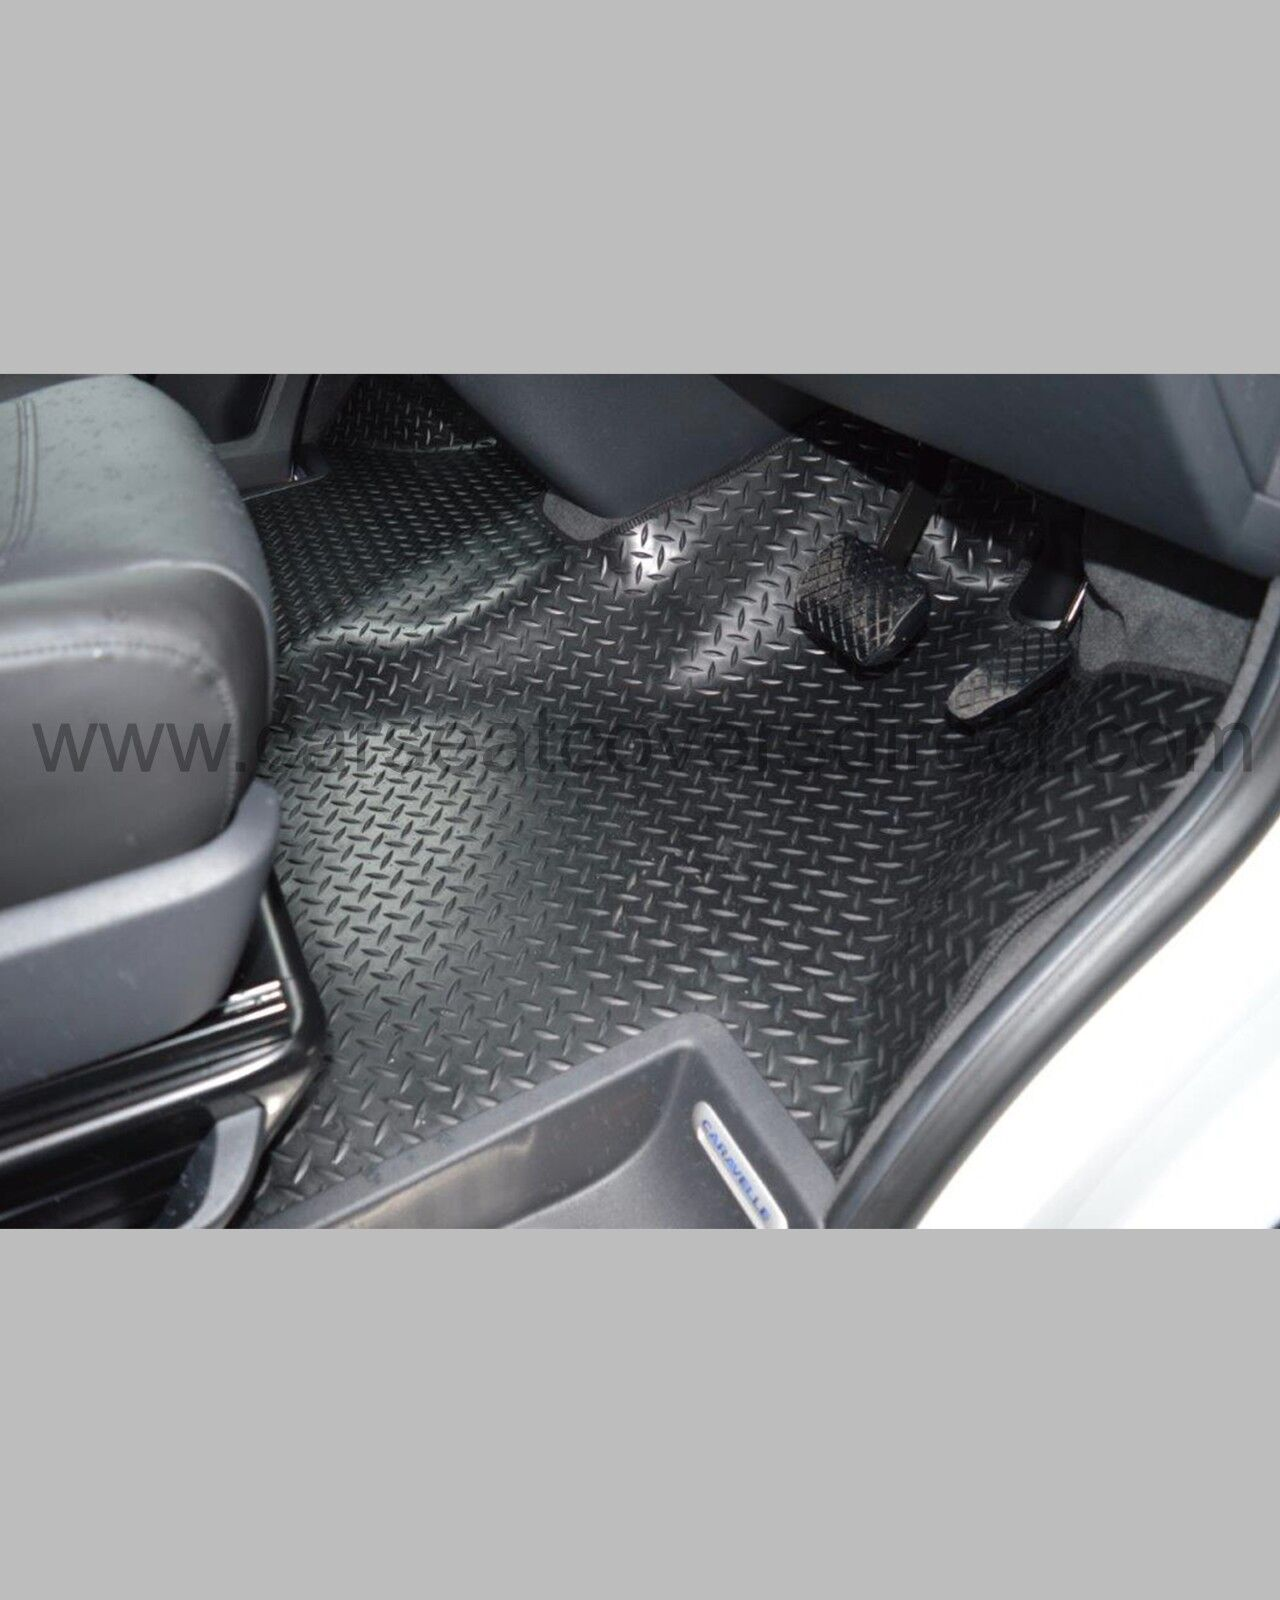 Vw Transporter T6 Heavy Duty Rubber Floor Mats Full